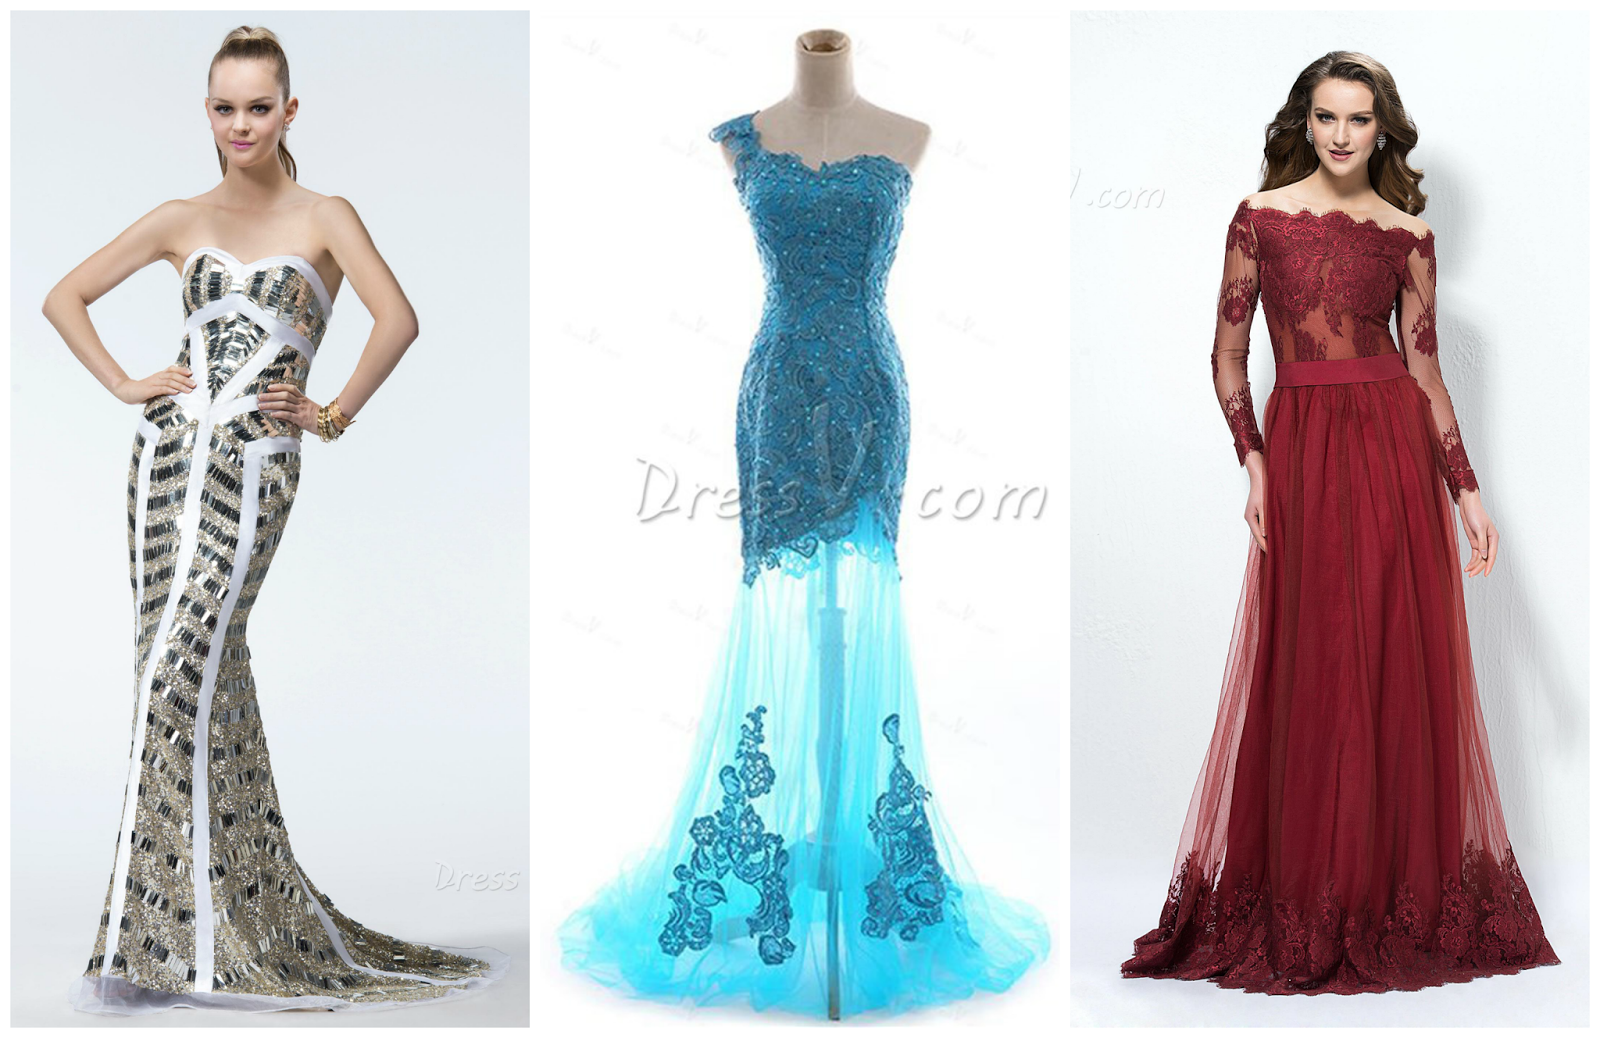 Sand Under My Feet: Discount Evening Dresses 2014 by DressV